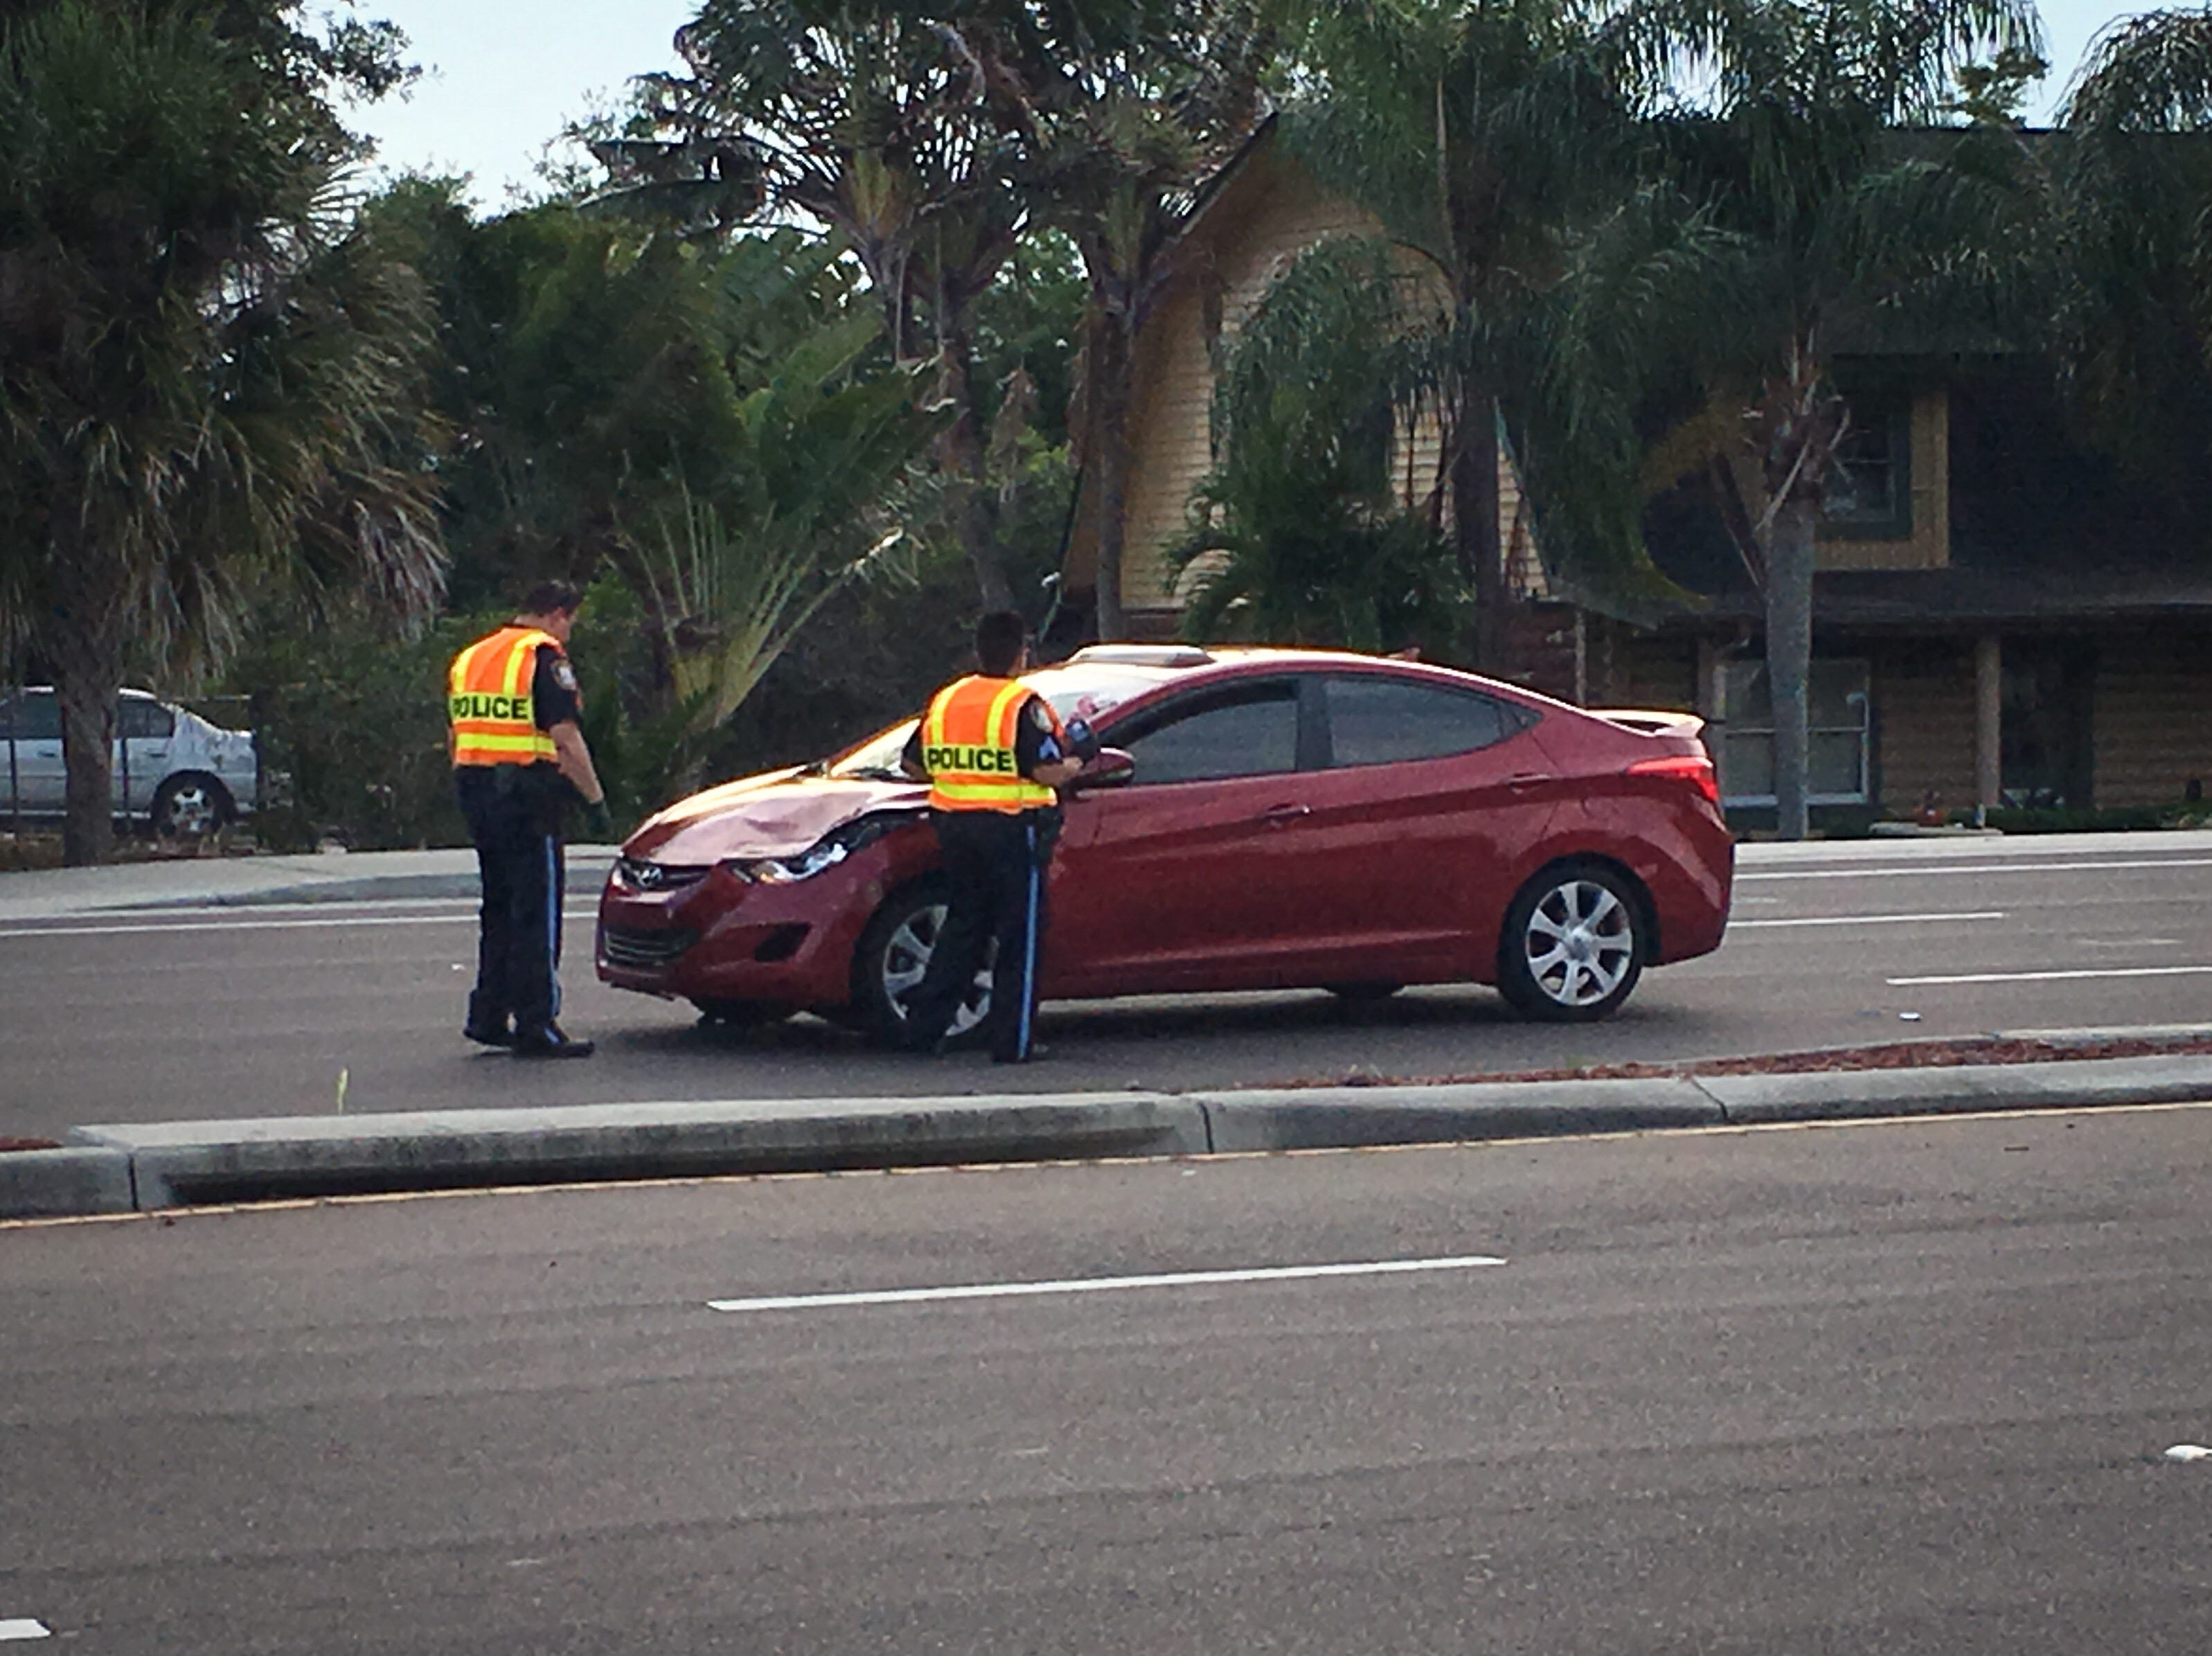 A pedestrian was hit and killed on U.S. 1 in Rockledge just north of Rockledge Regional Medical Center.